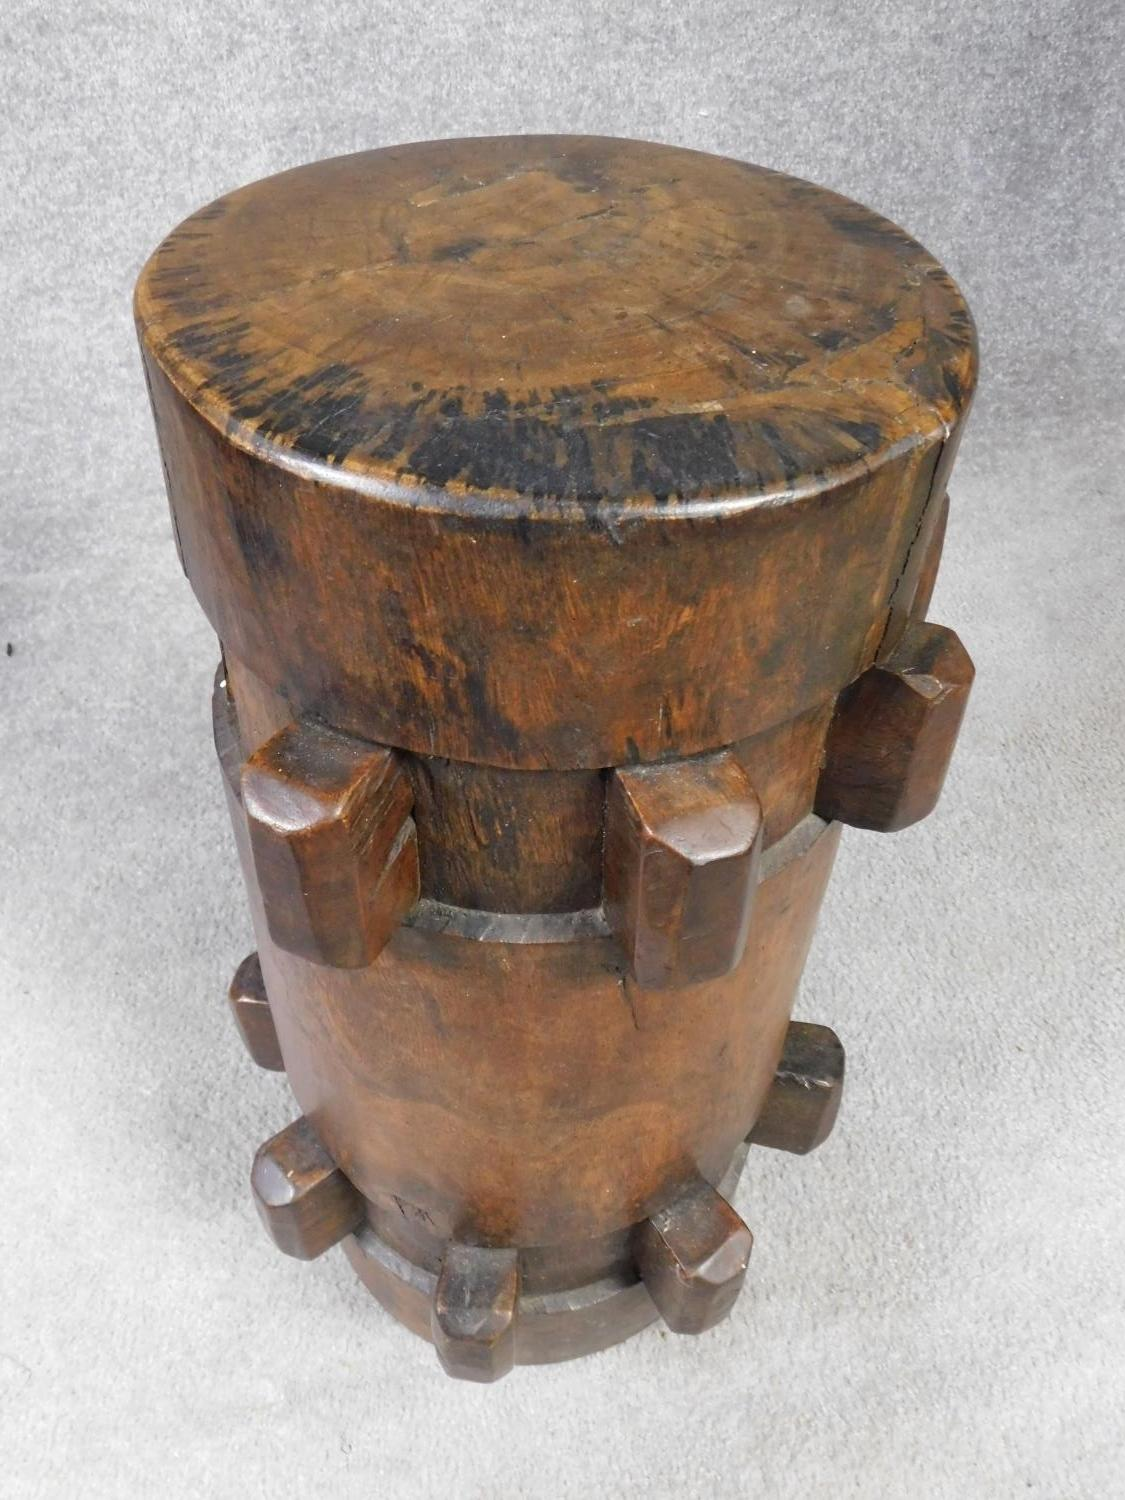 An antique hardwood stool converted from a ship's capstan. H.59 W.27cm - Image 2 of 3